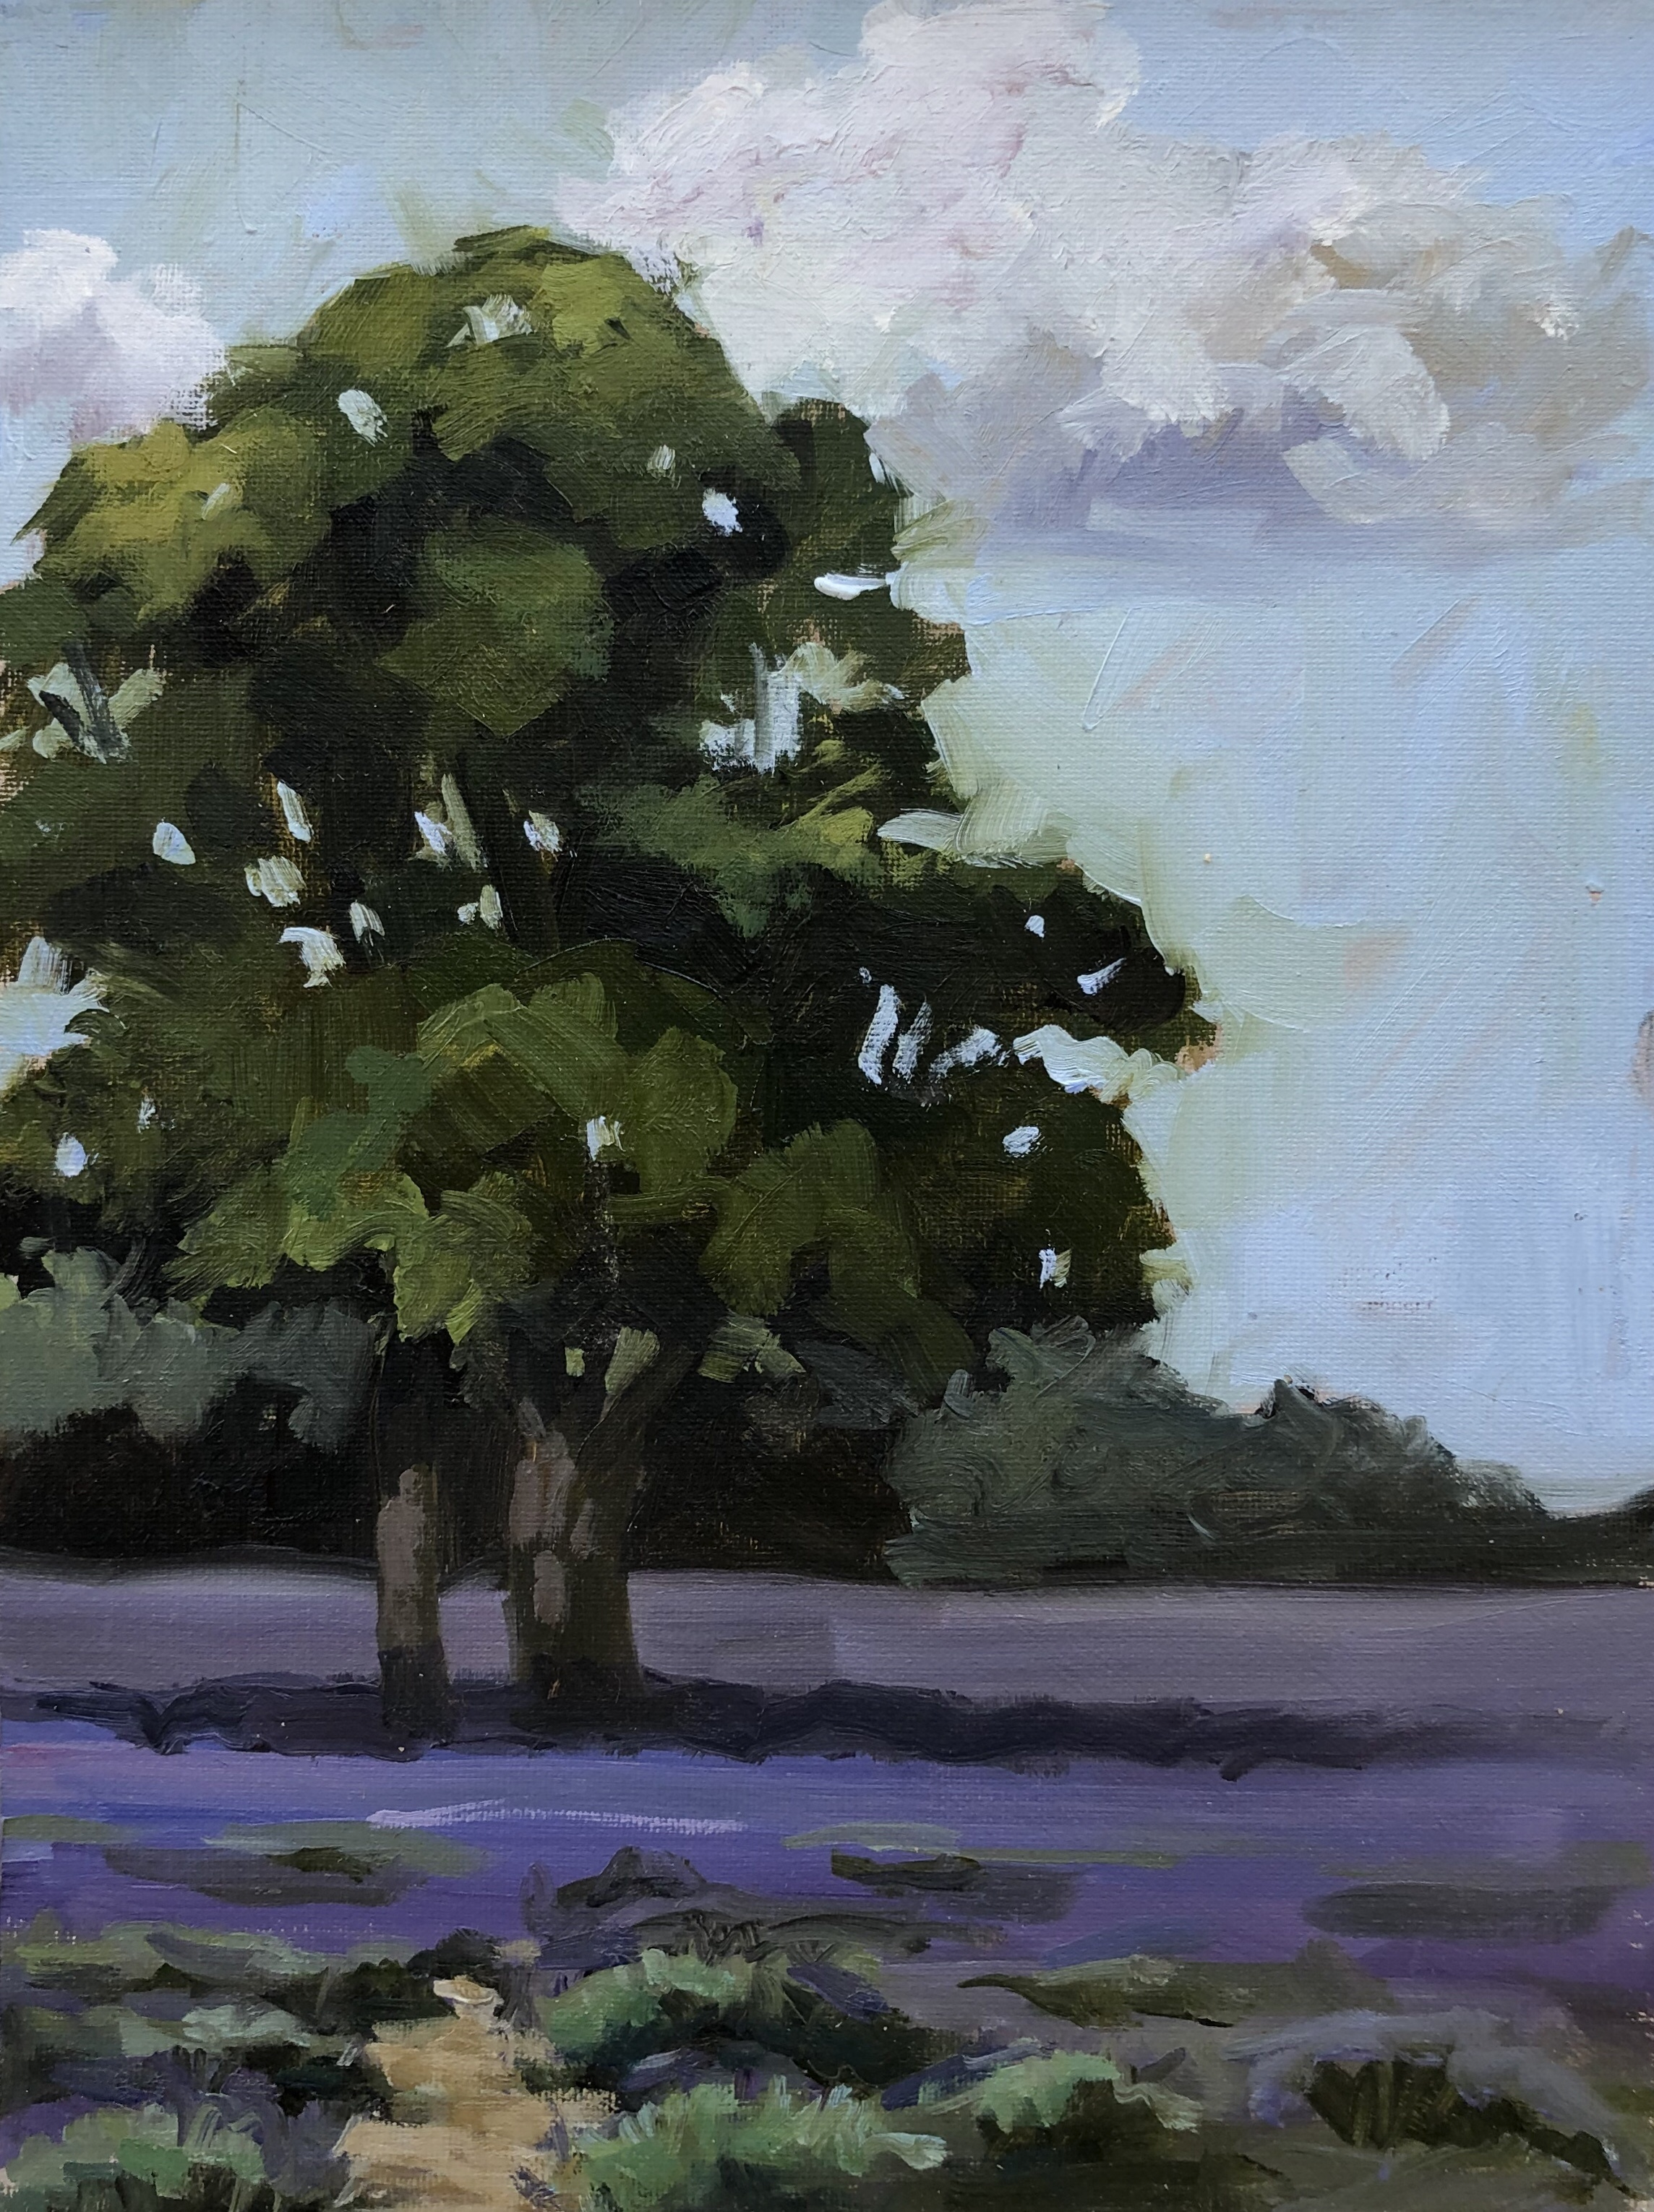 Tree at Mayfield by Penny German